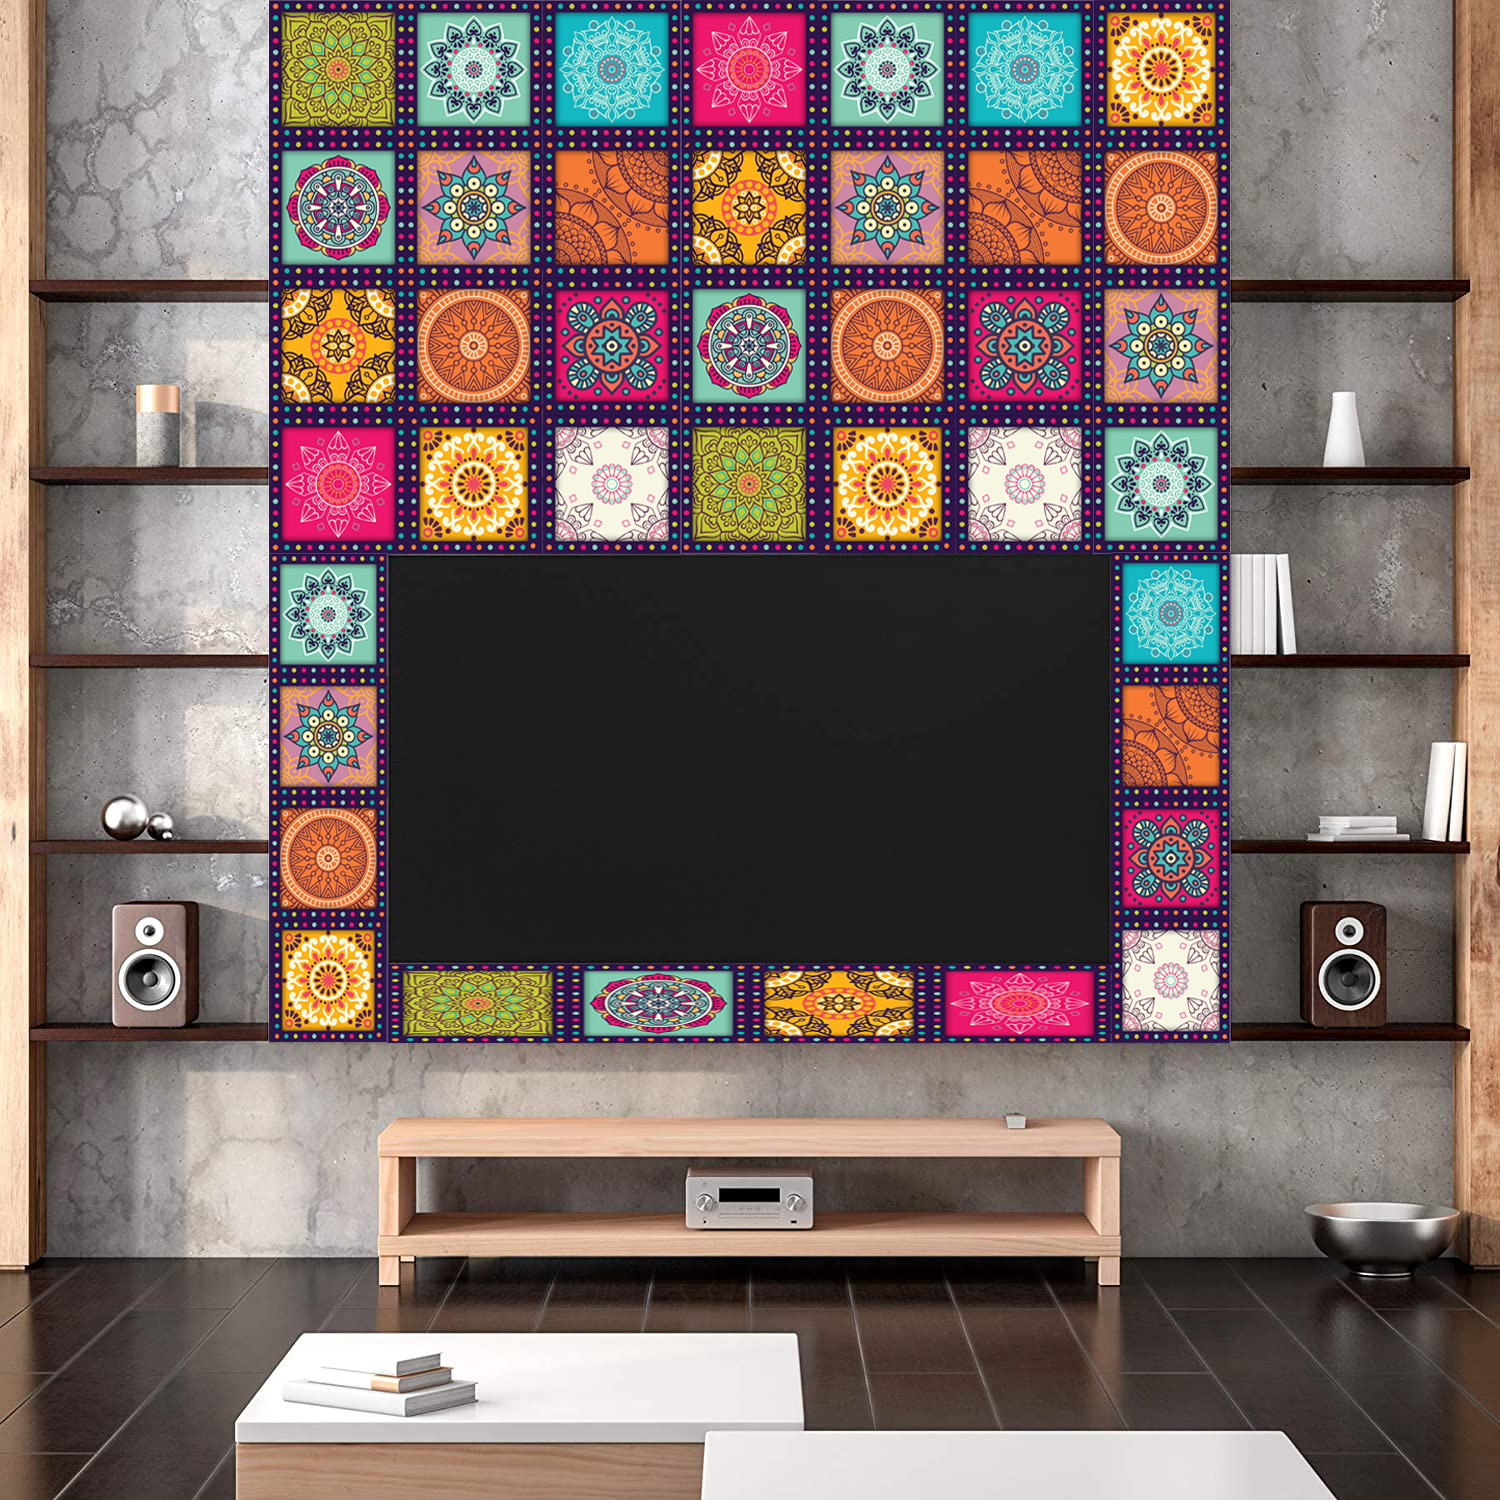 Wall Attraction Tile Stickers Pack of 12 pieces for Home Decor for Walls Self Adhesive Tile Sticker 4.4 in by 4.4 in (12 Pieces)